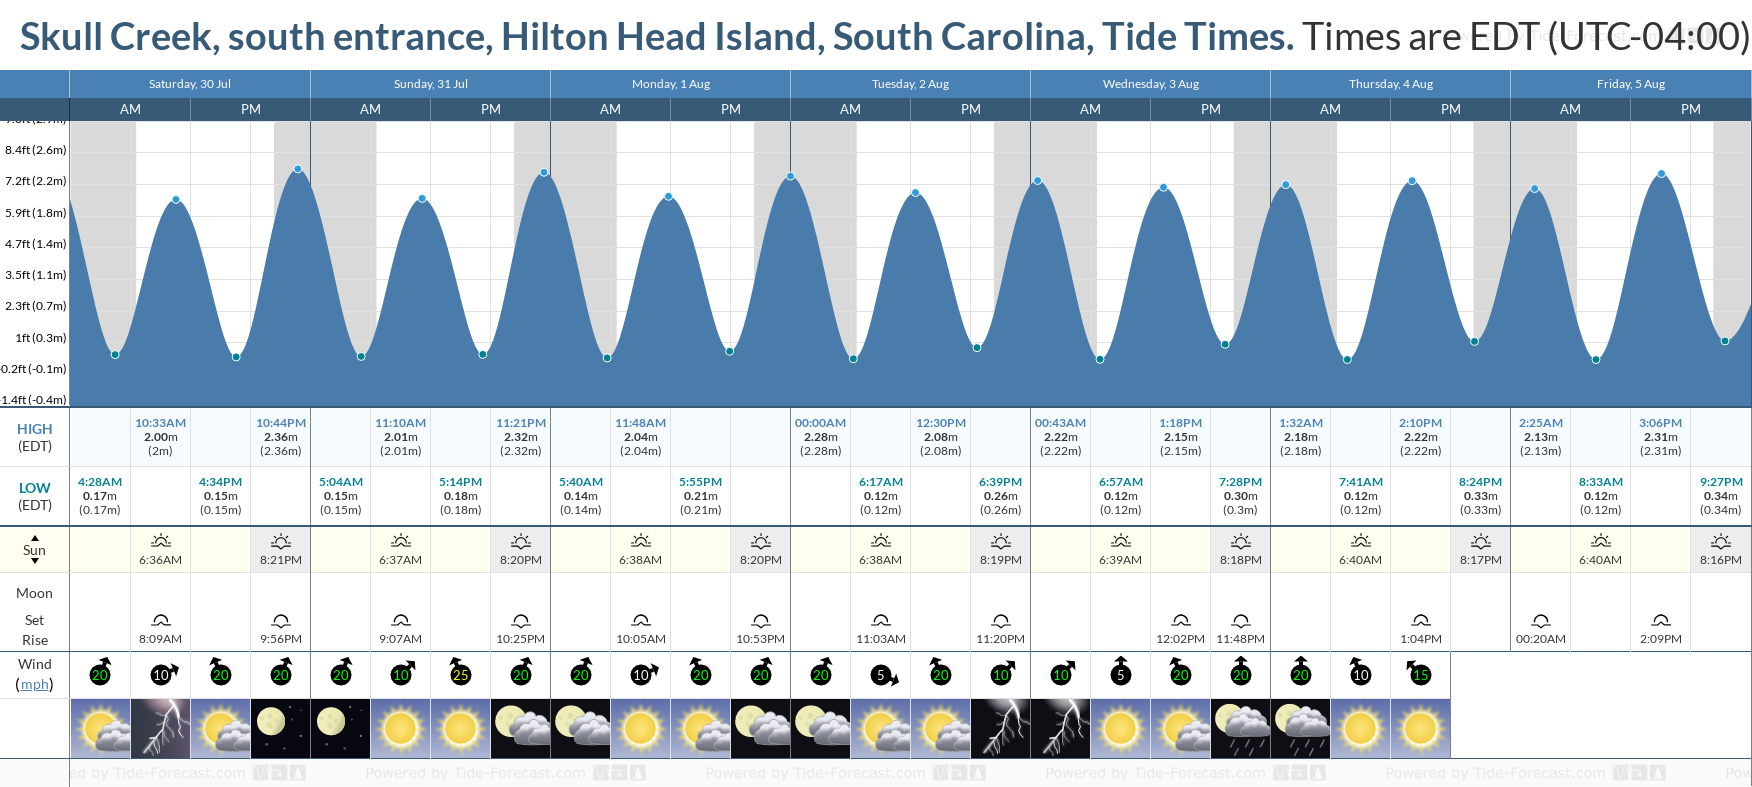 Skull Creek, south entrance, Hilton Head Island, South Carolina Tide Chart including high and low tide tide times for the next 7 days